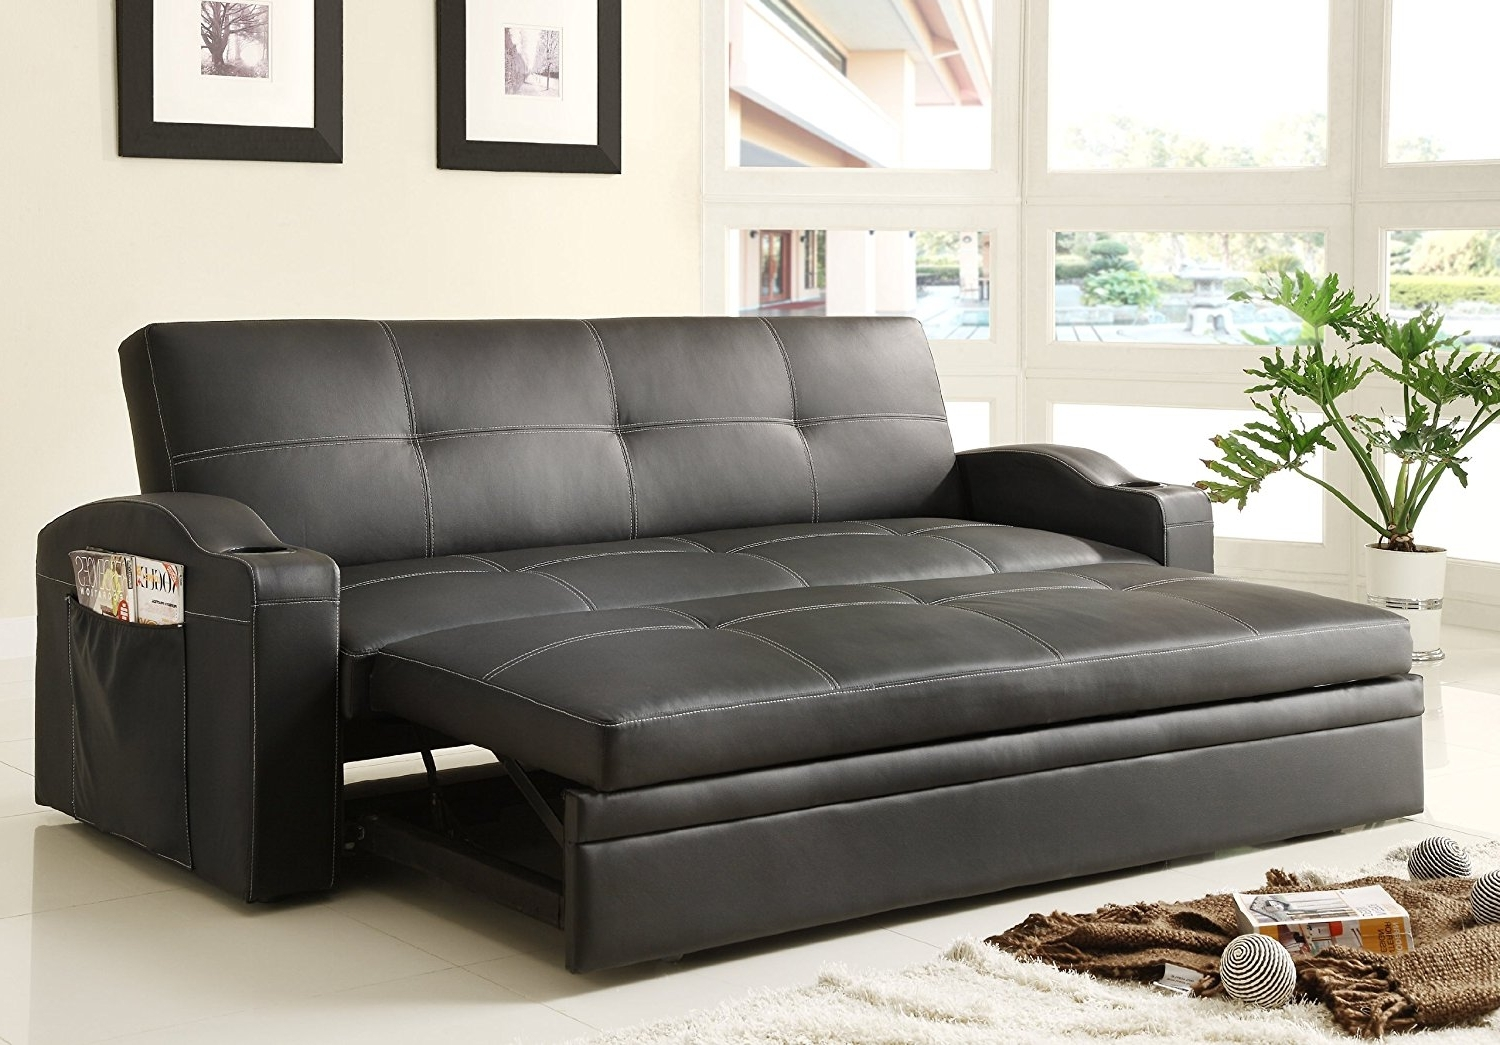 Trendy Convertible Sofa Design Ideas — Cabinets, Beds, Sofas And Within Convertible Sofas (View 16 of 20)